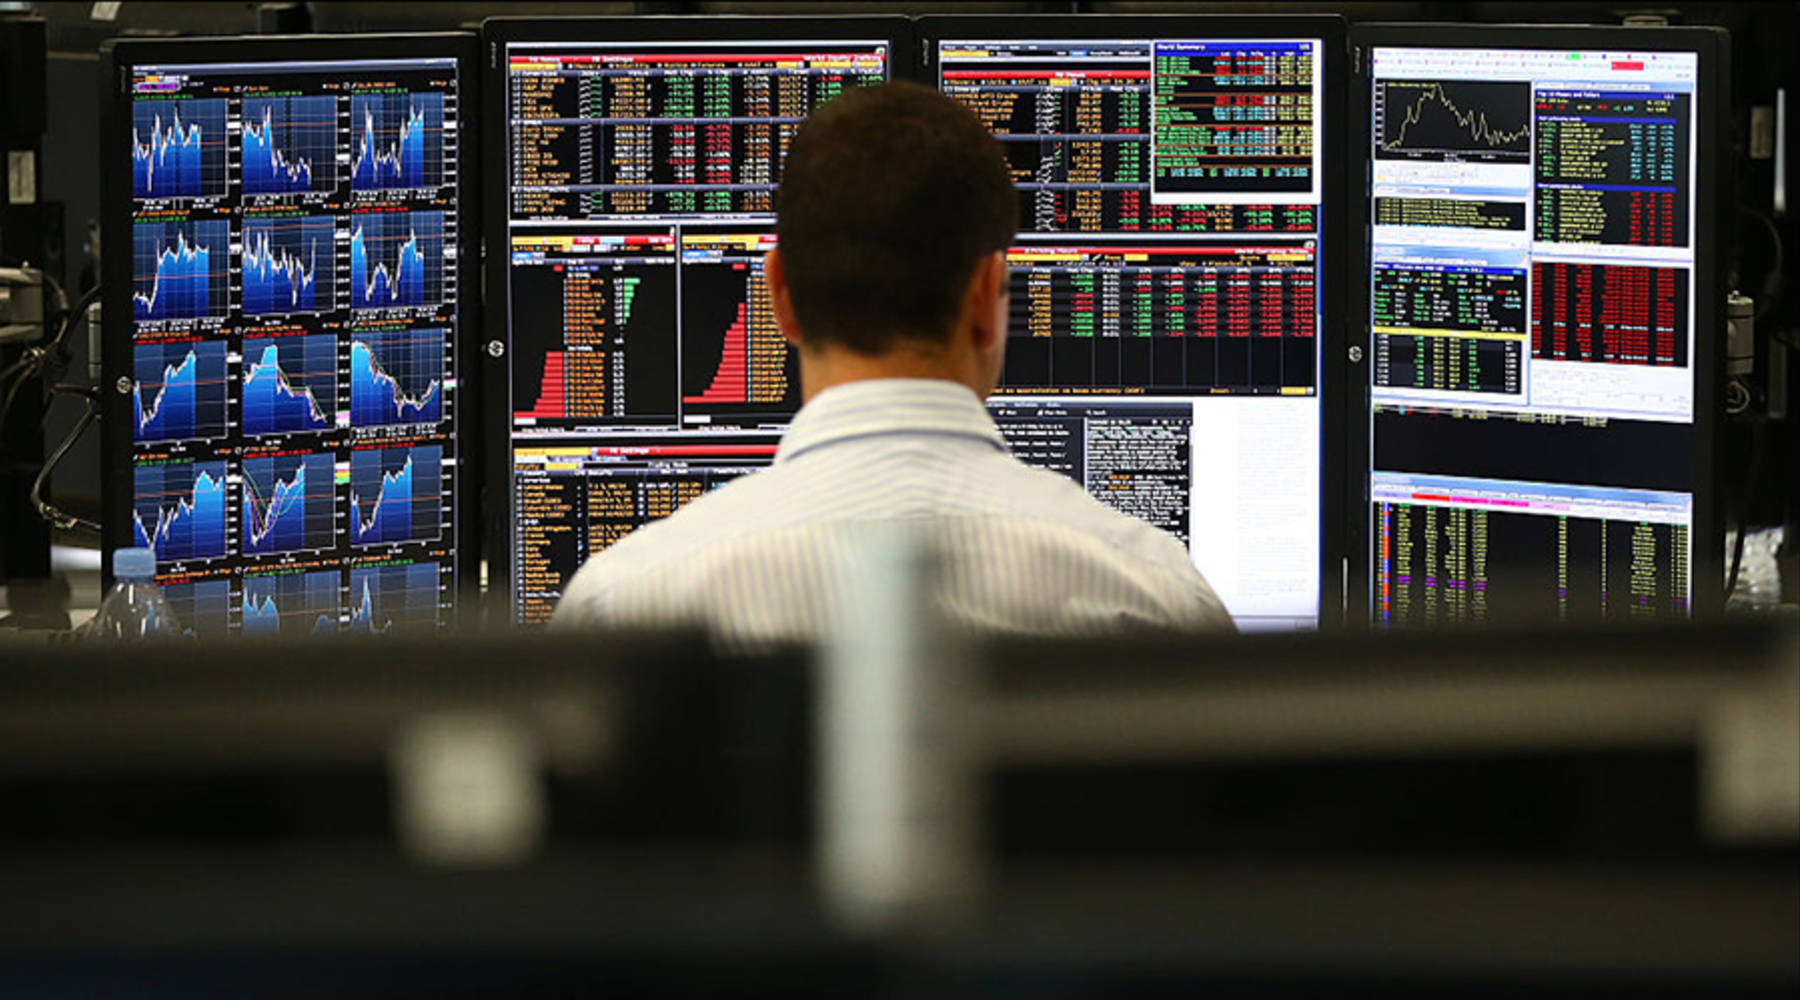 Too much high-frequency trading can rig the market, IEX